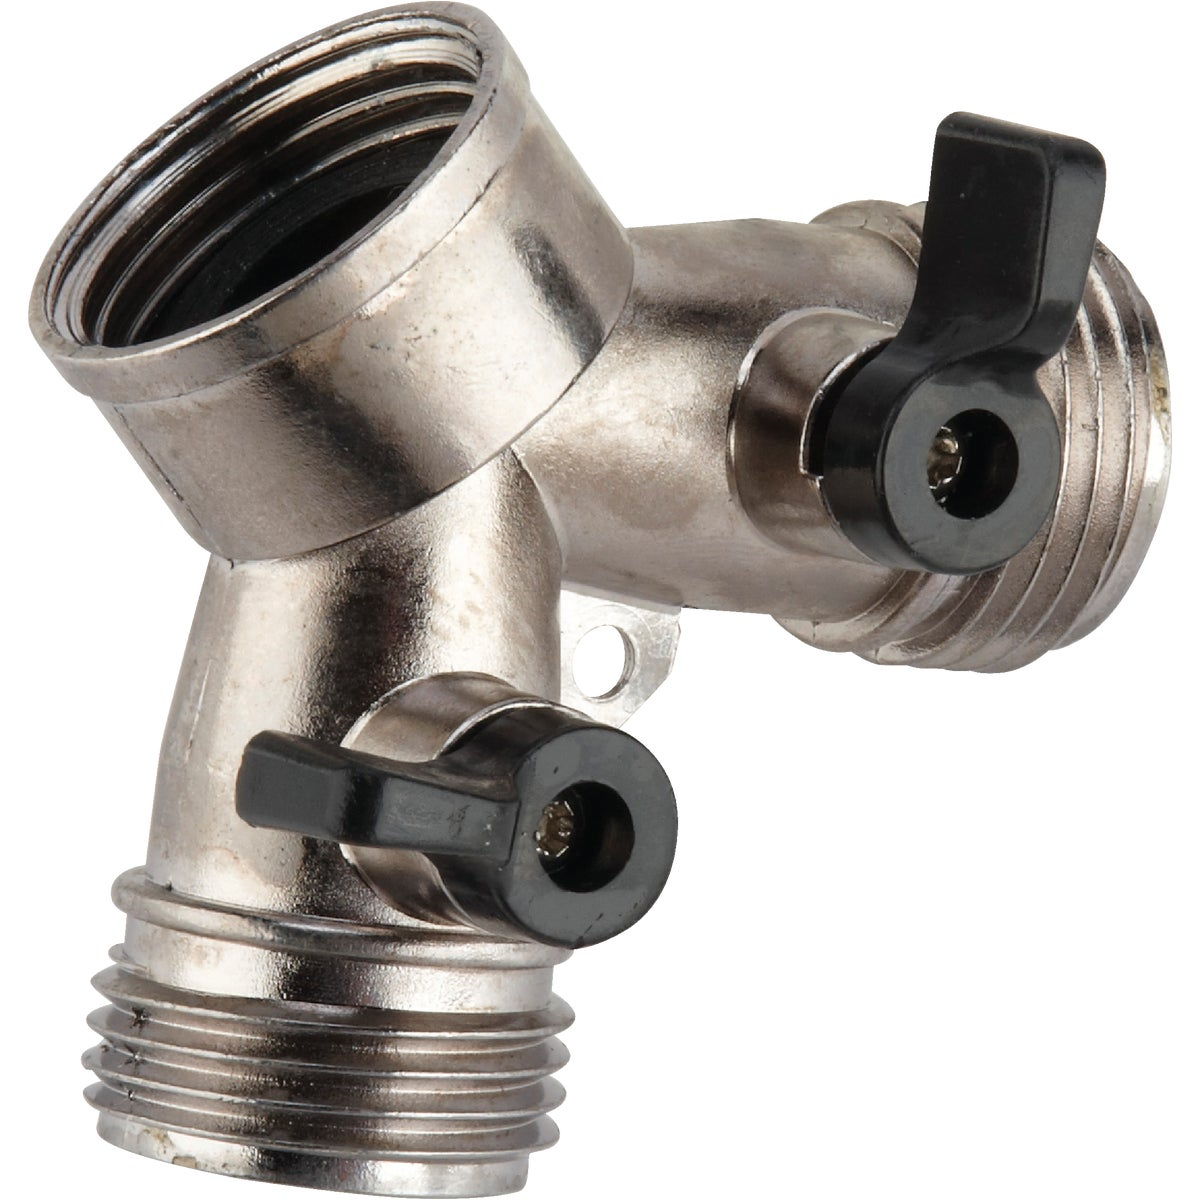 METAL SHUT OFF Y-VALVE